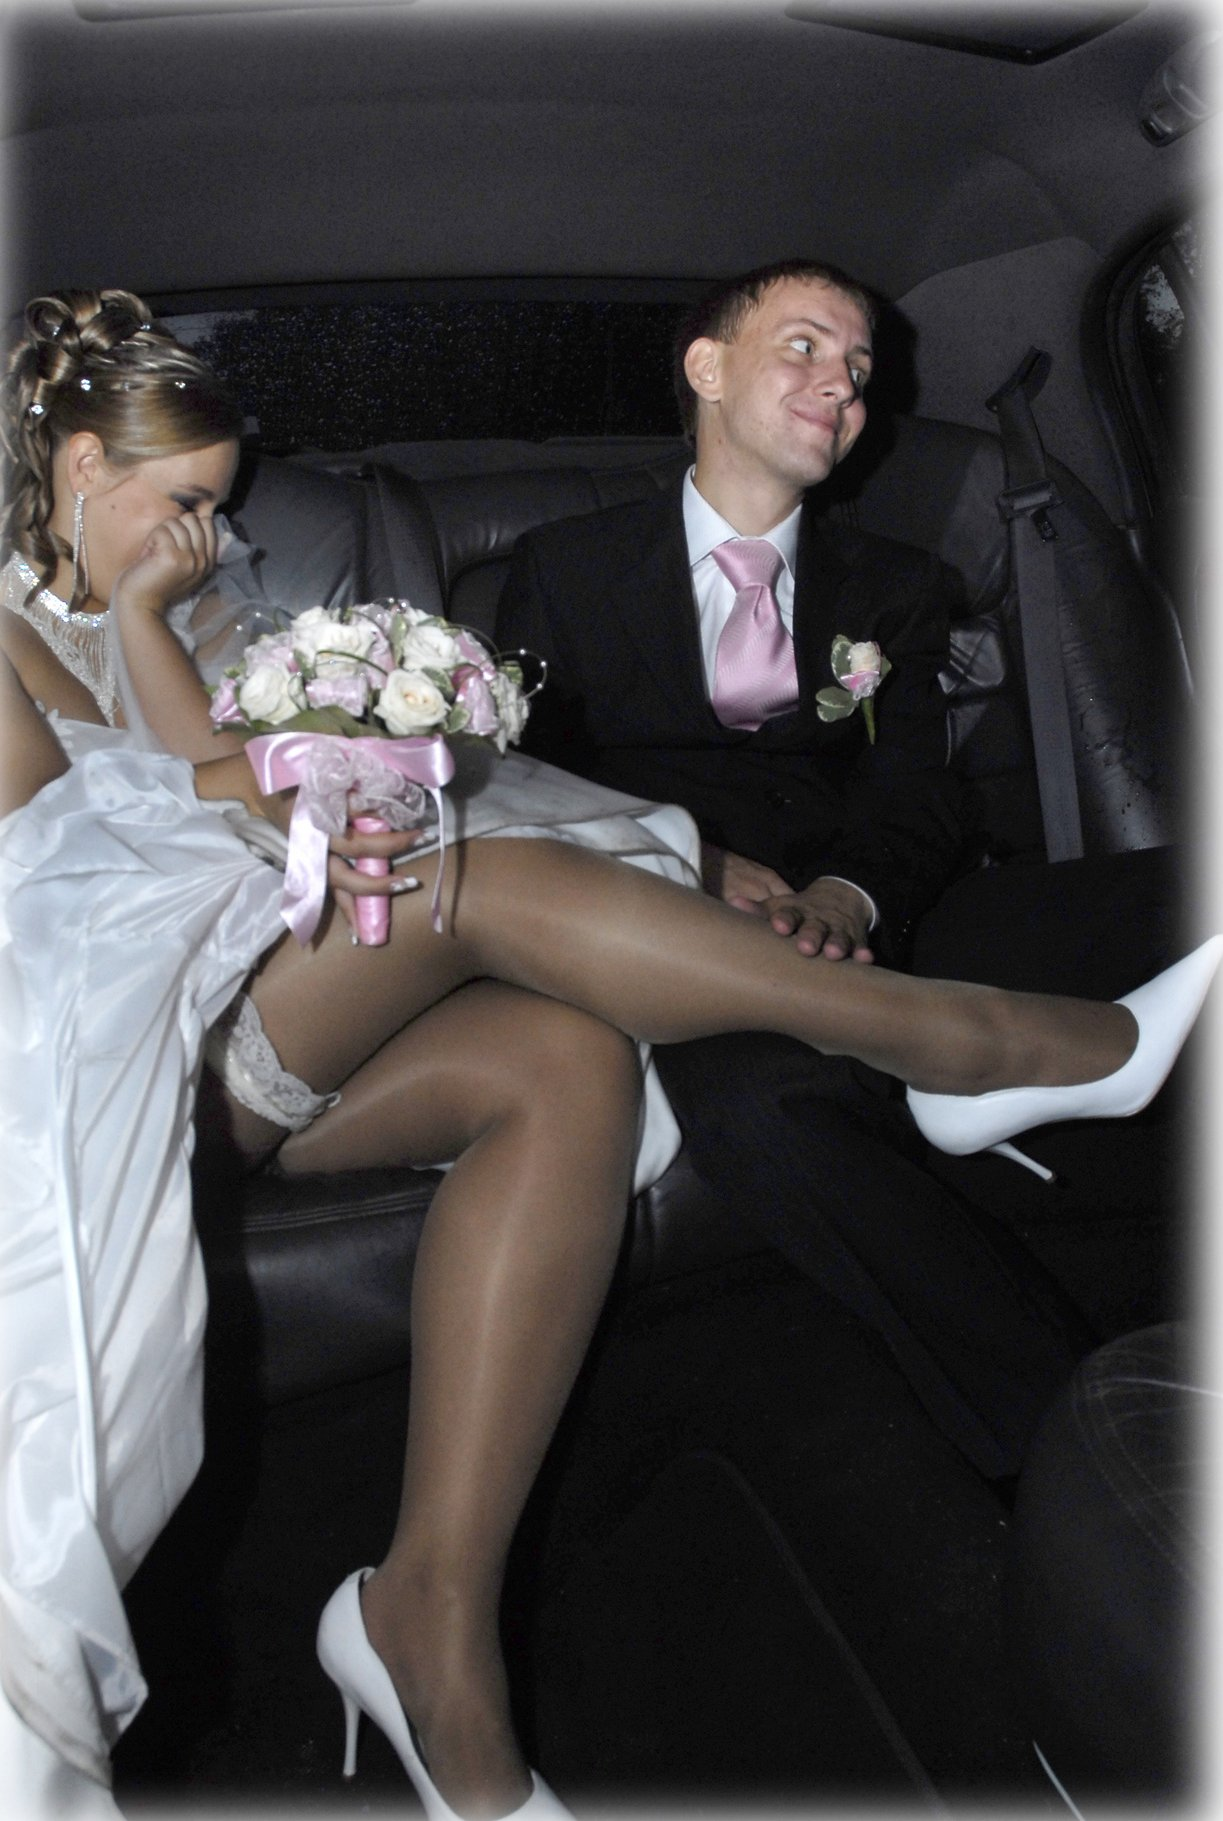 Vid Fuck drunk pantyhose picture gallery sexy